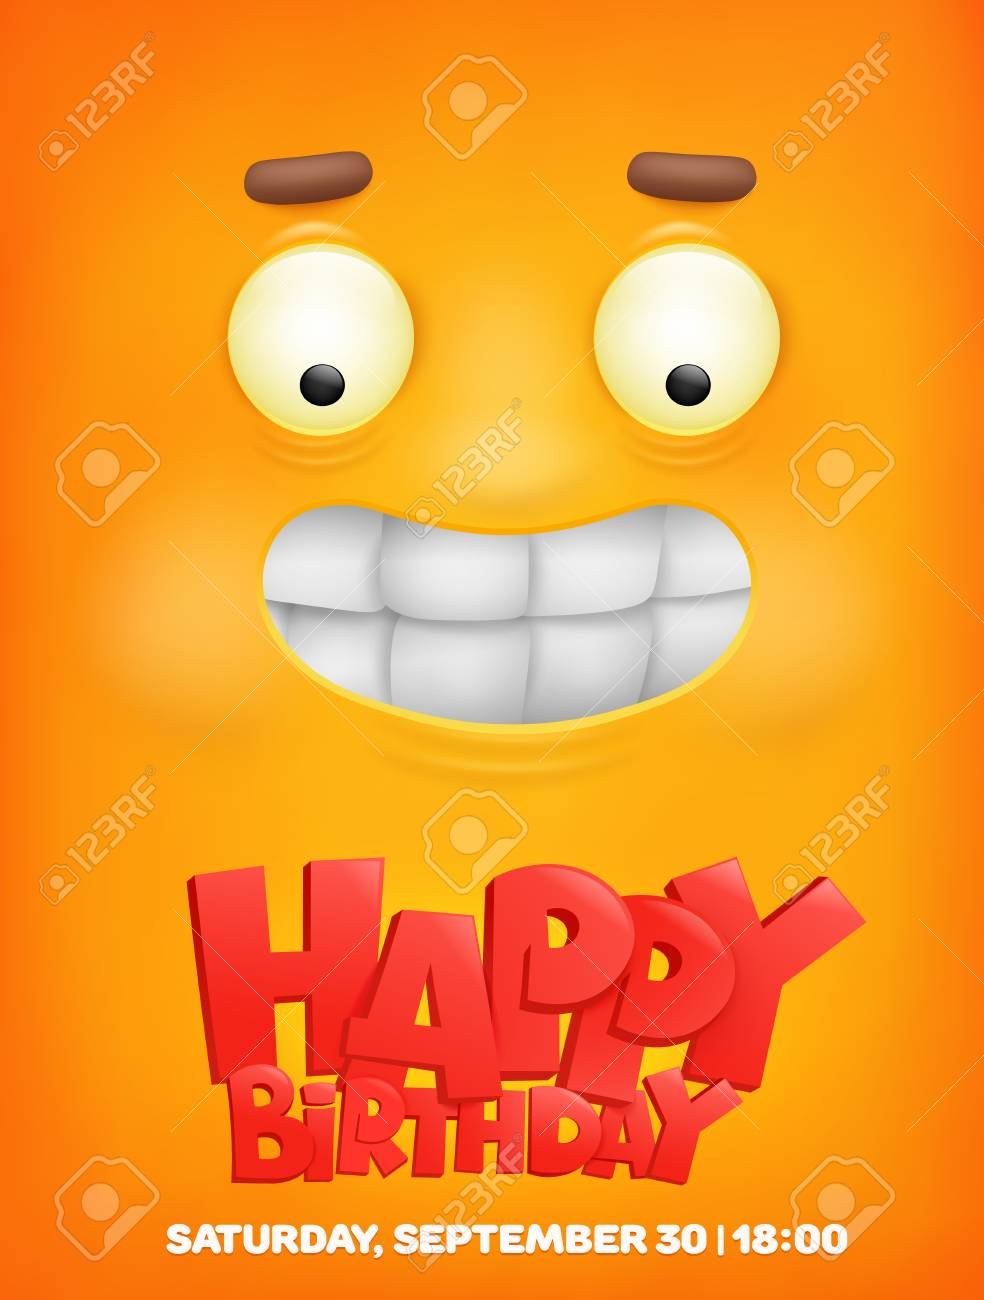 Happy Birthday Greeting Card With Emoji Smile Face Vector Illustrations Stock